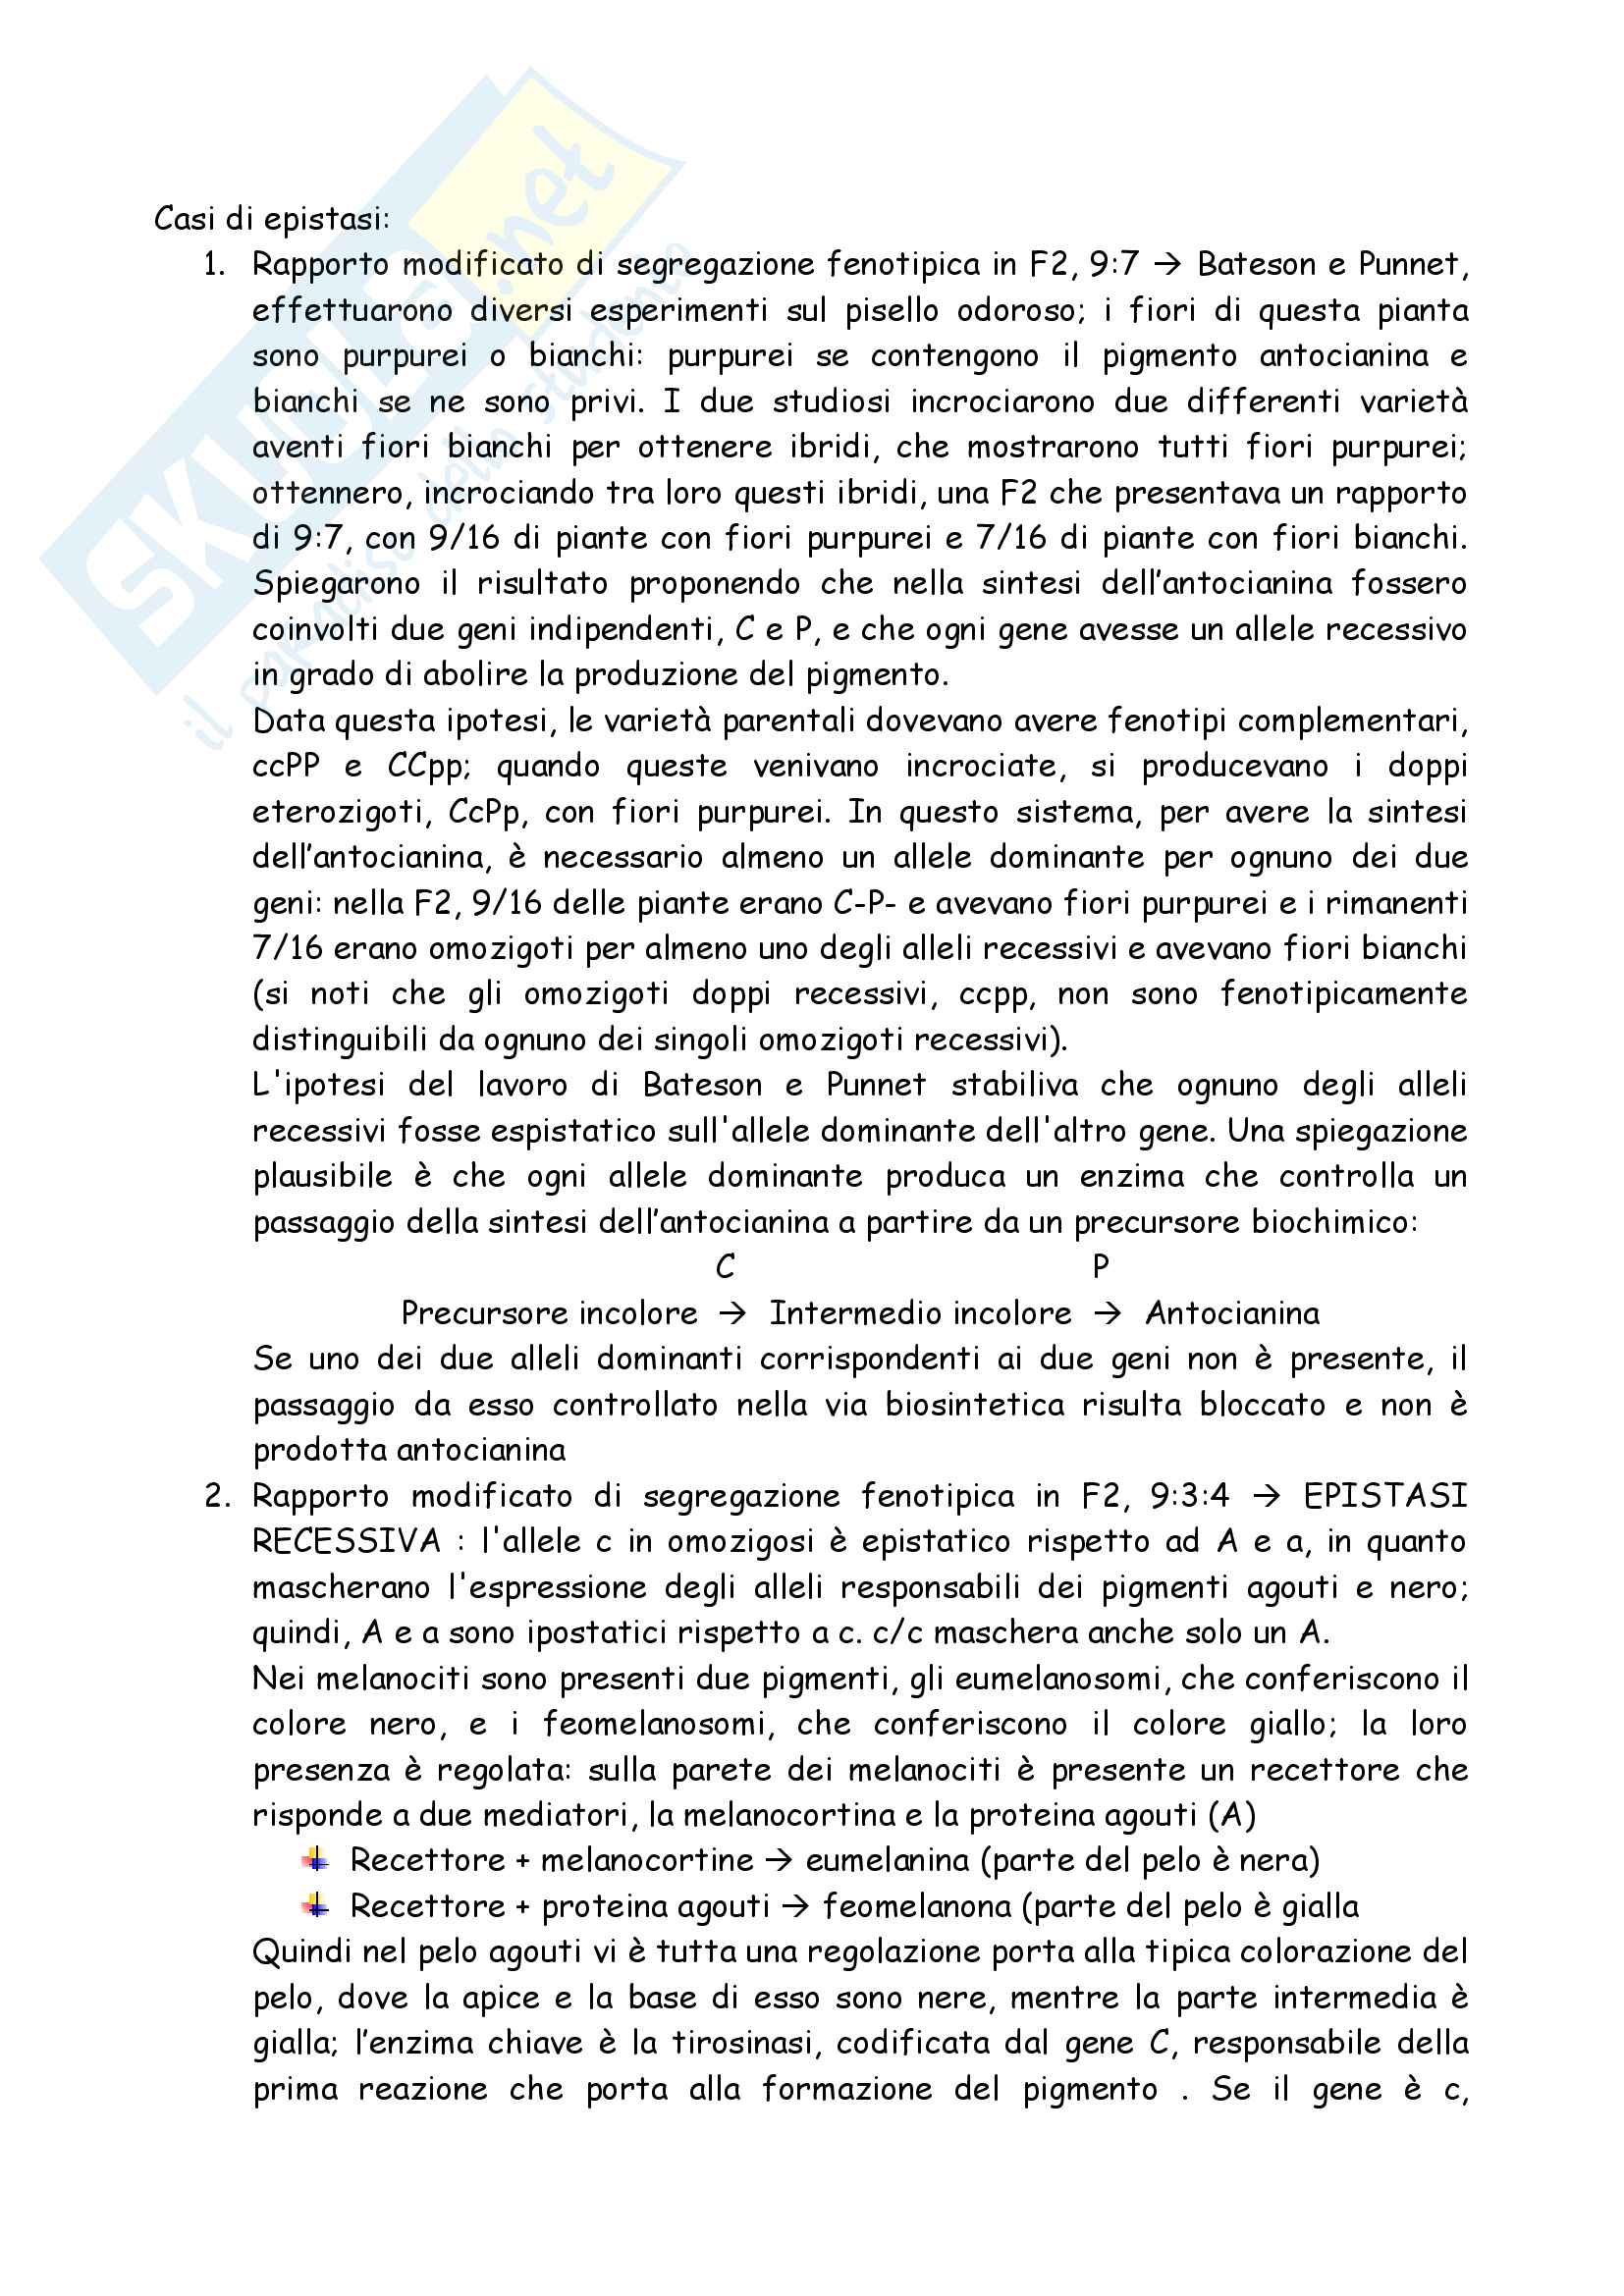 Totale Genetica Pag. 16